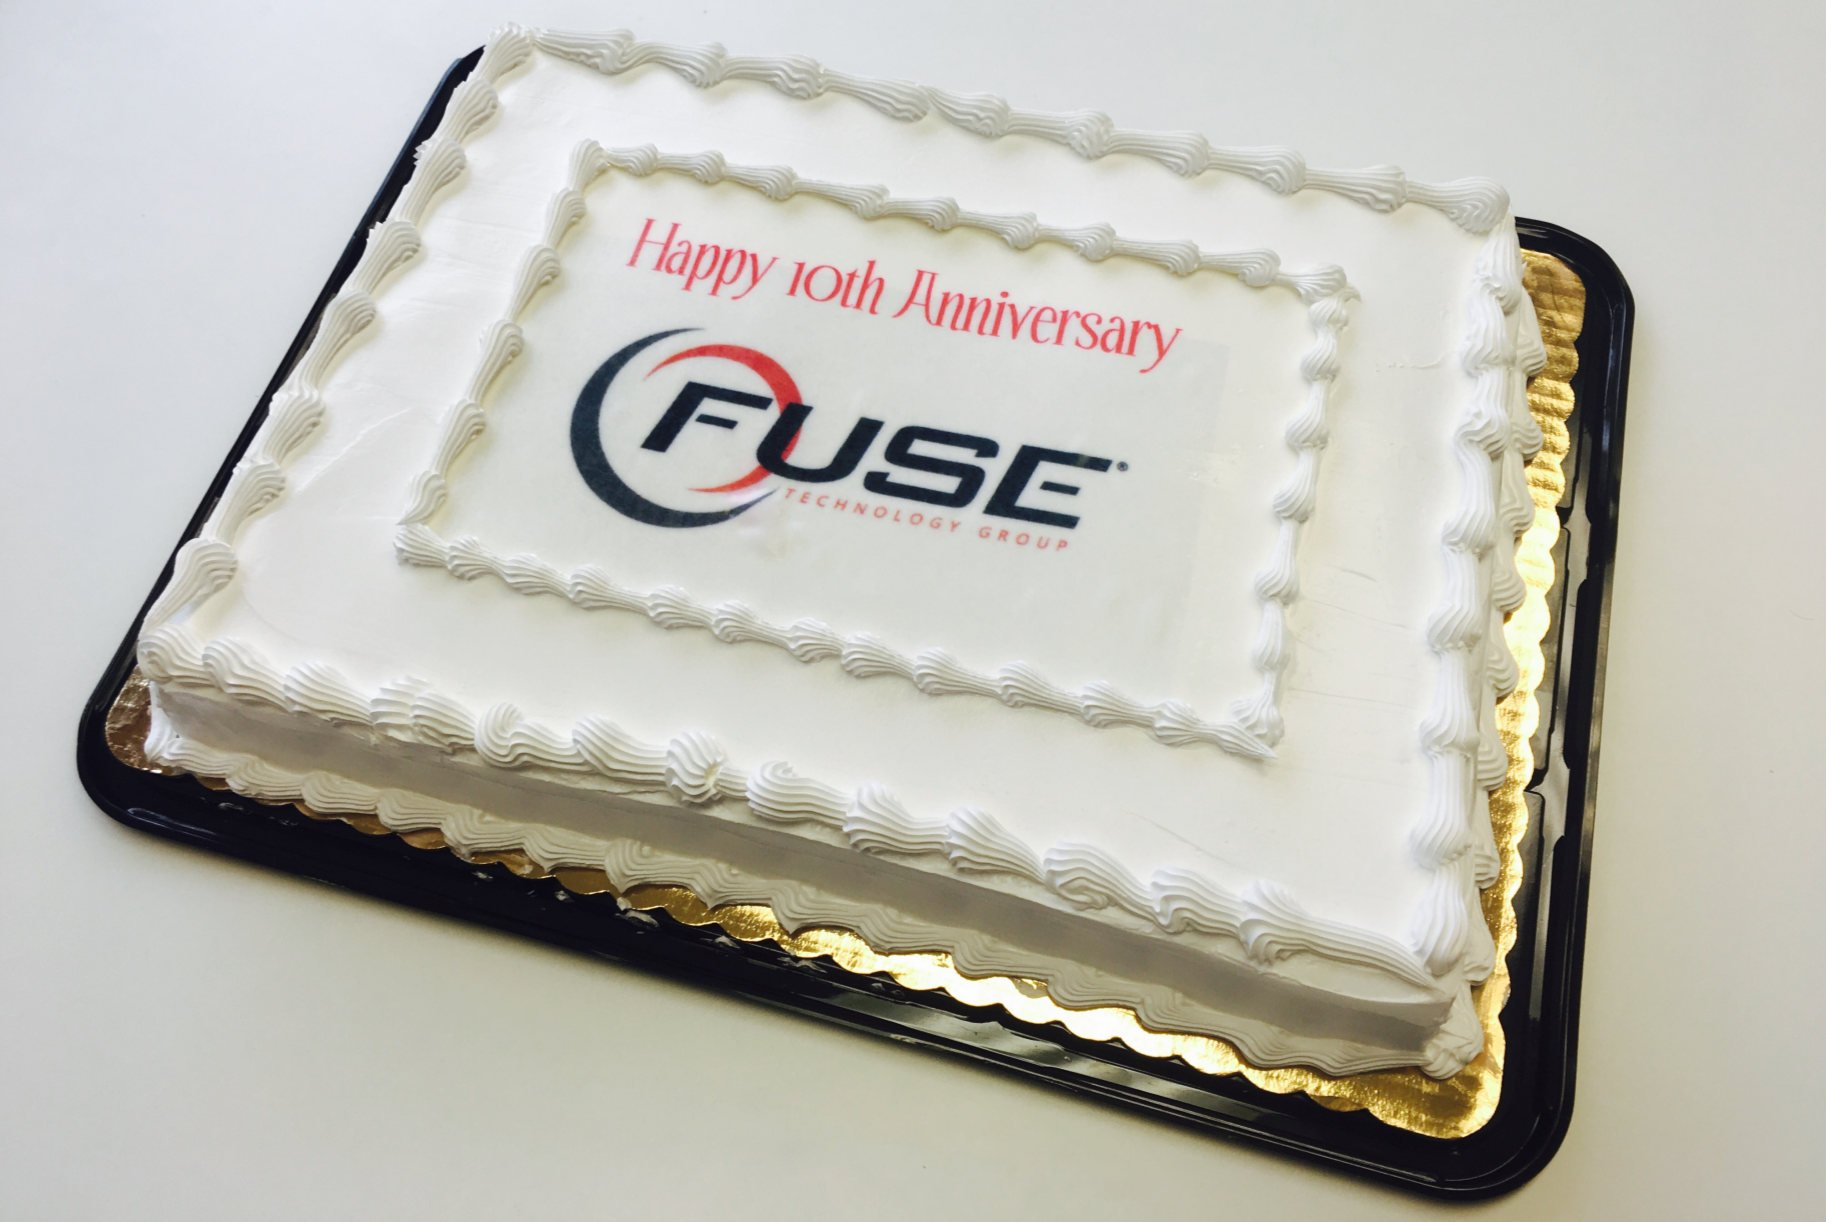 fuse-10-year-anniversary-croped